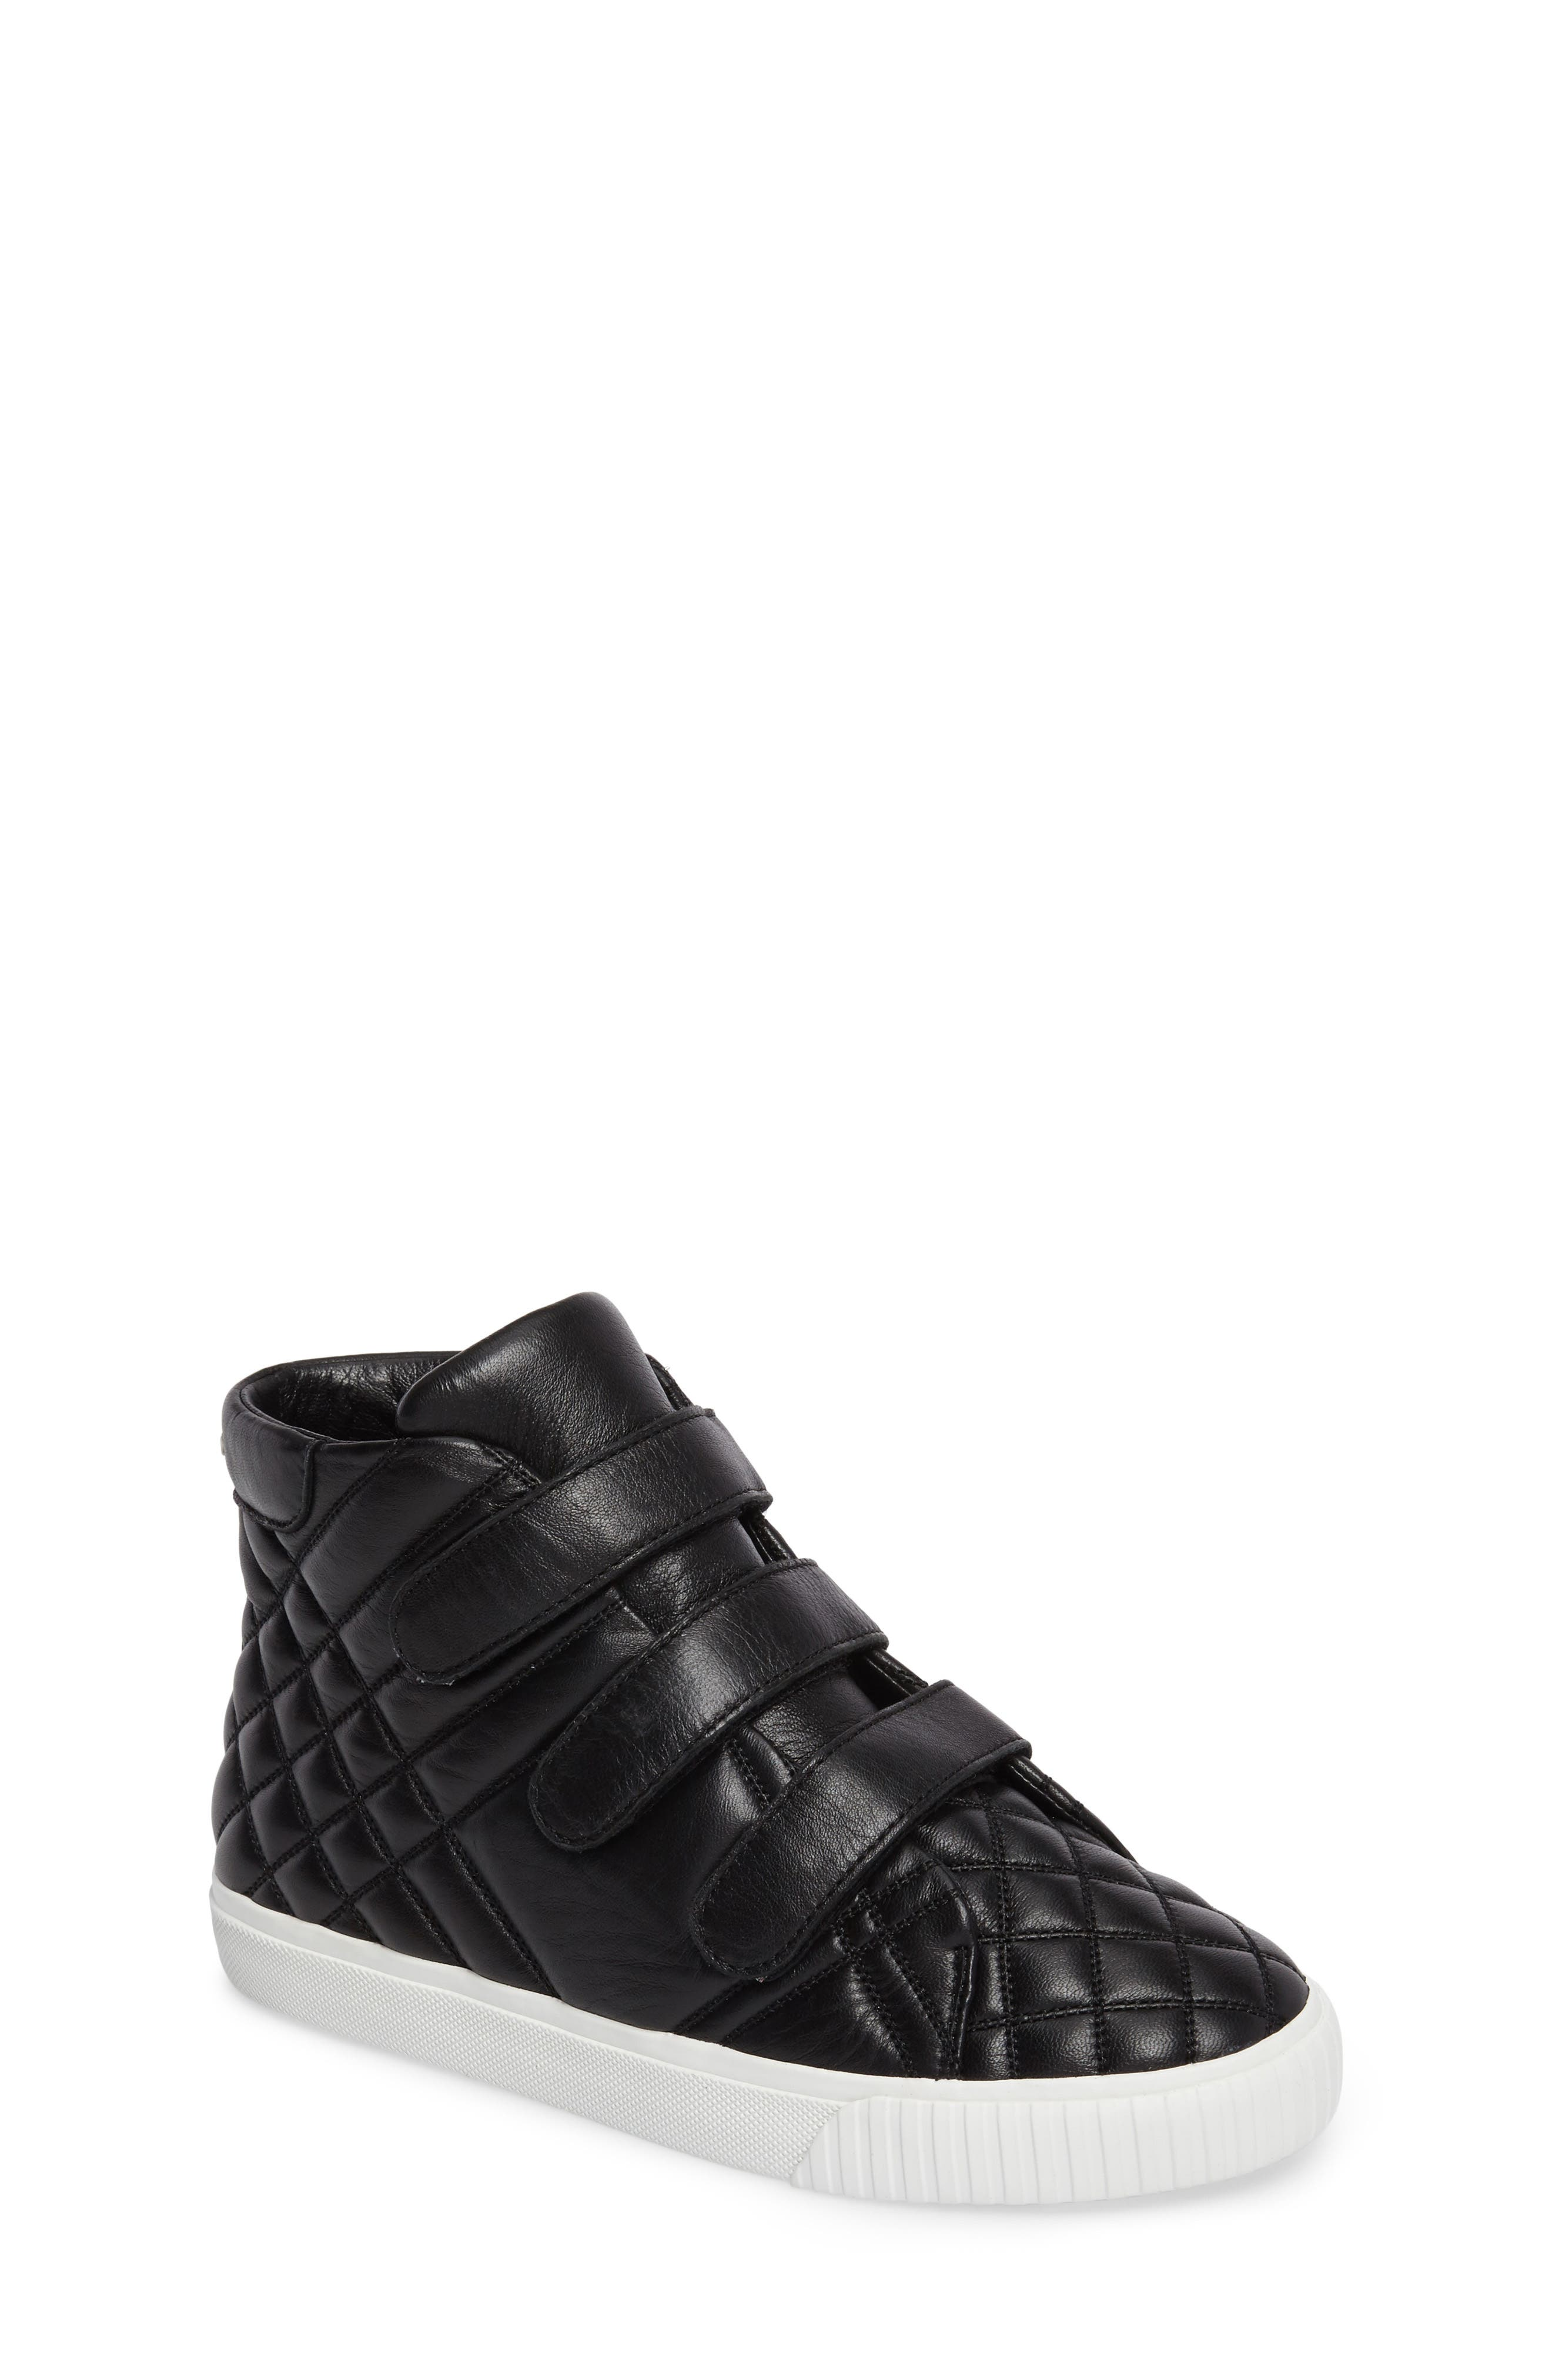 Sturrock Quilted High Top Sneaker,                         Main,                         color,